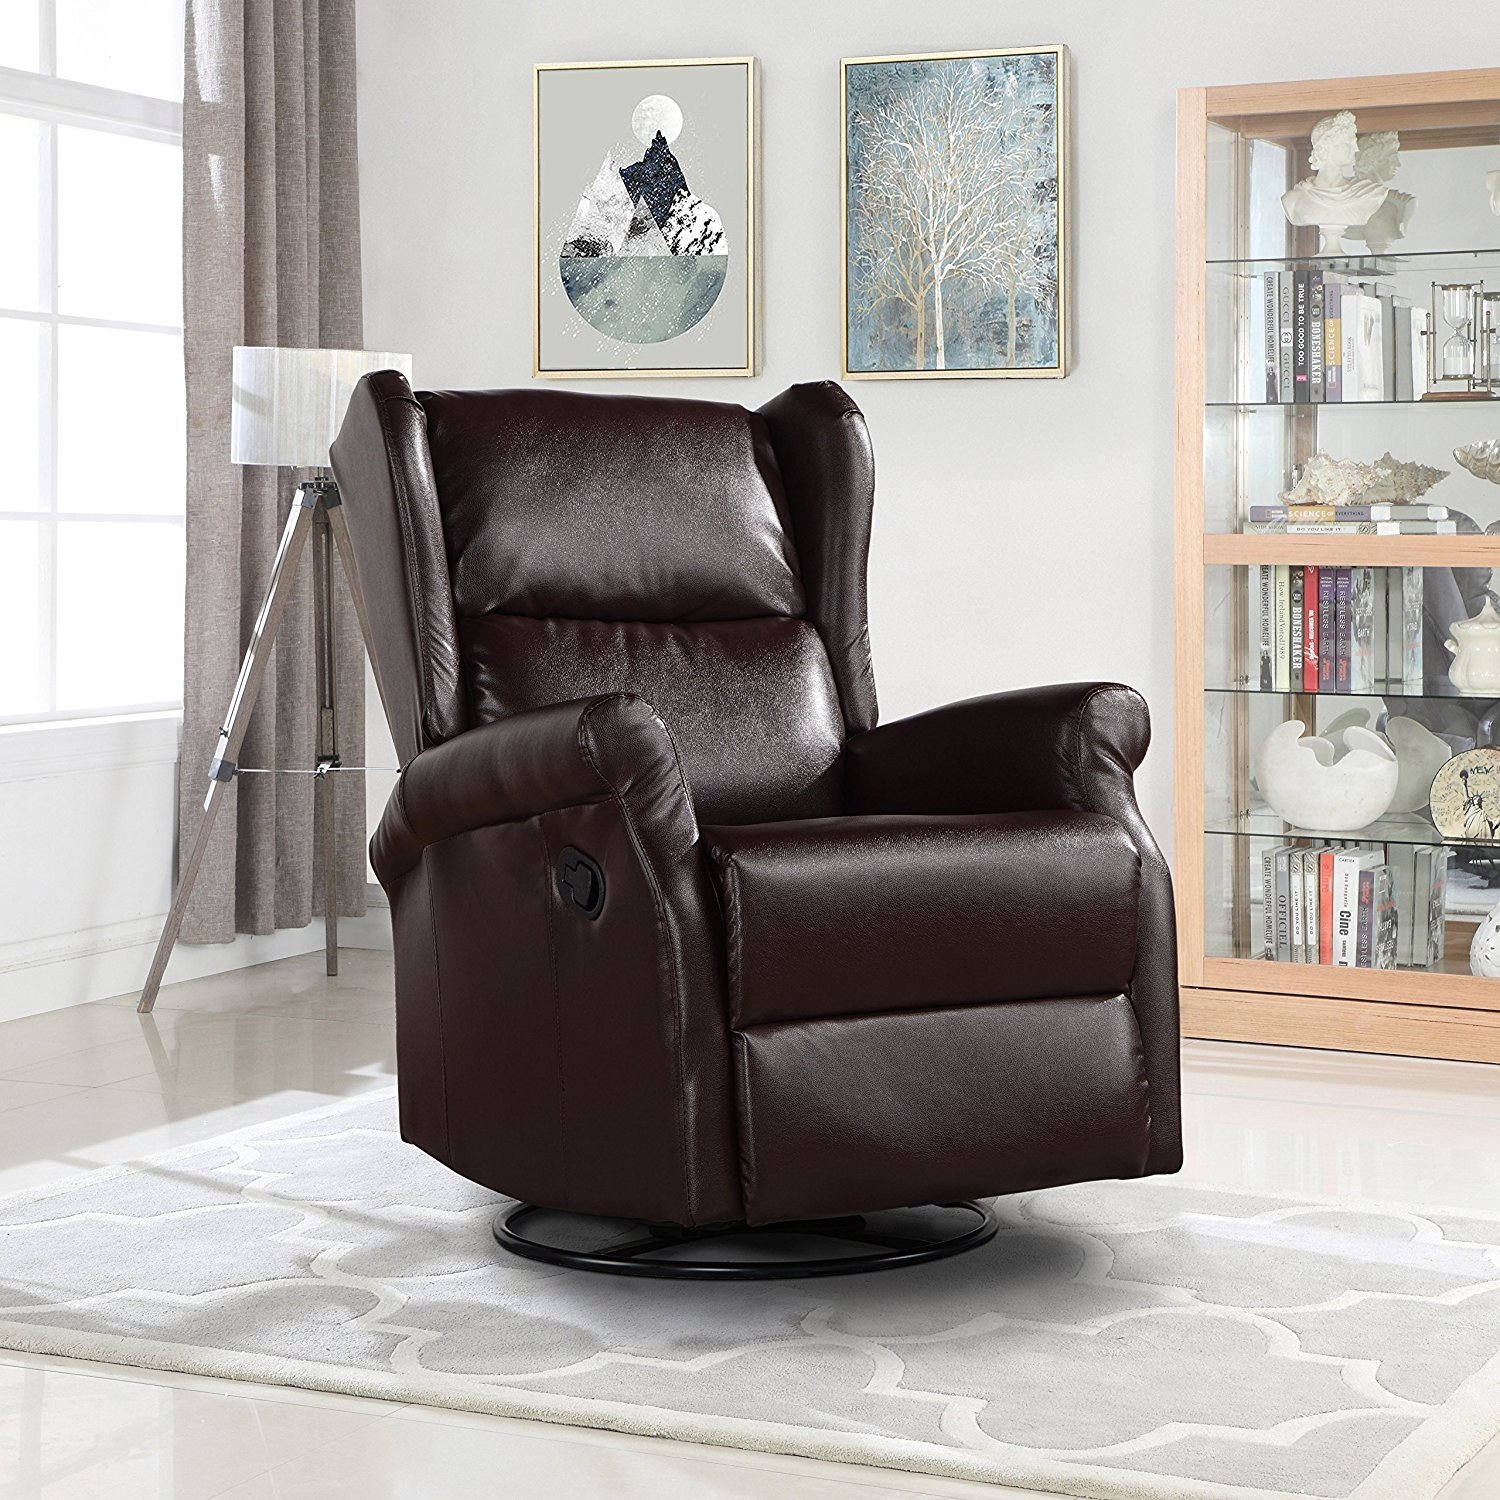 Details about Reclining Swivel Accent Chair for Living Room, Faux Leather  Arm Chair (Brown)